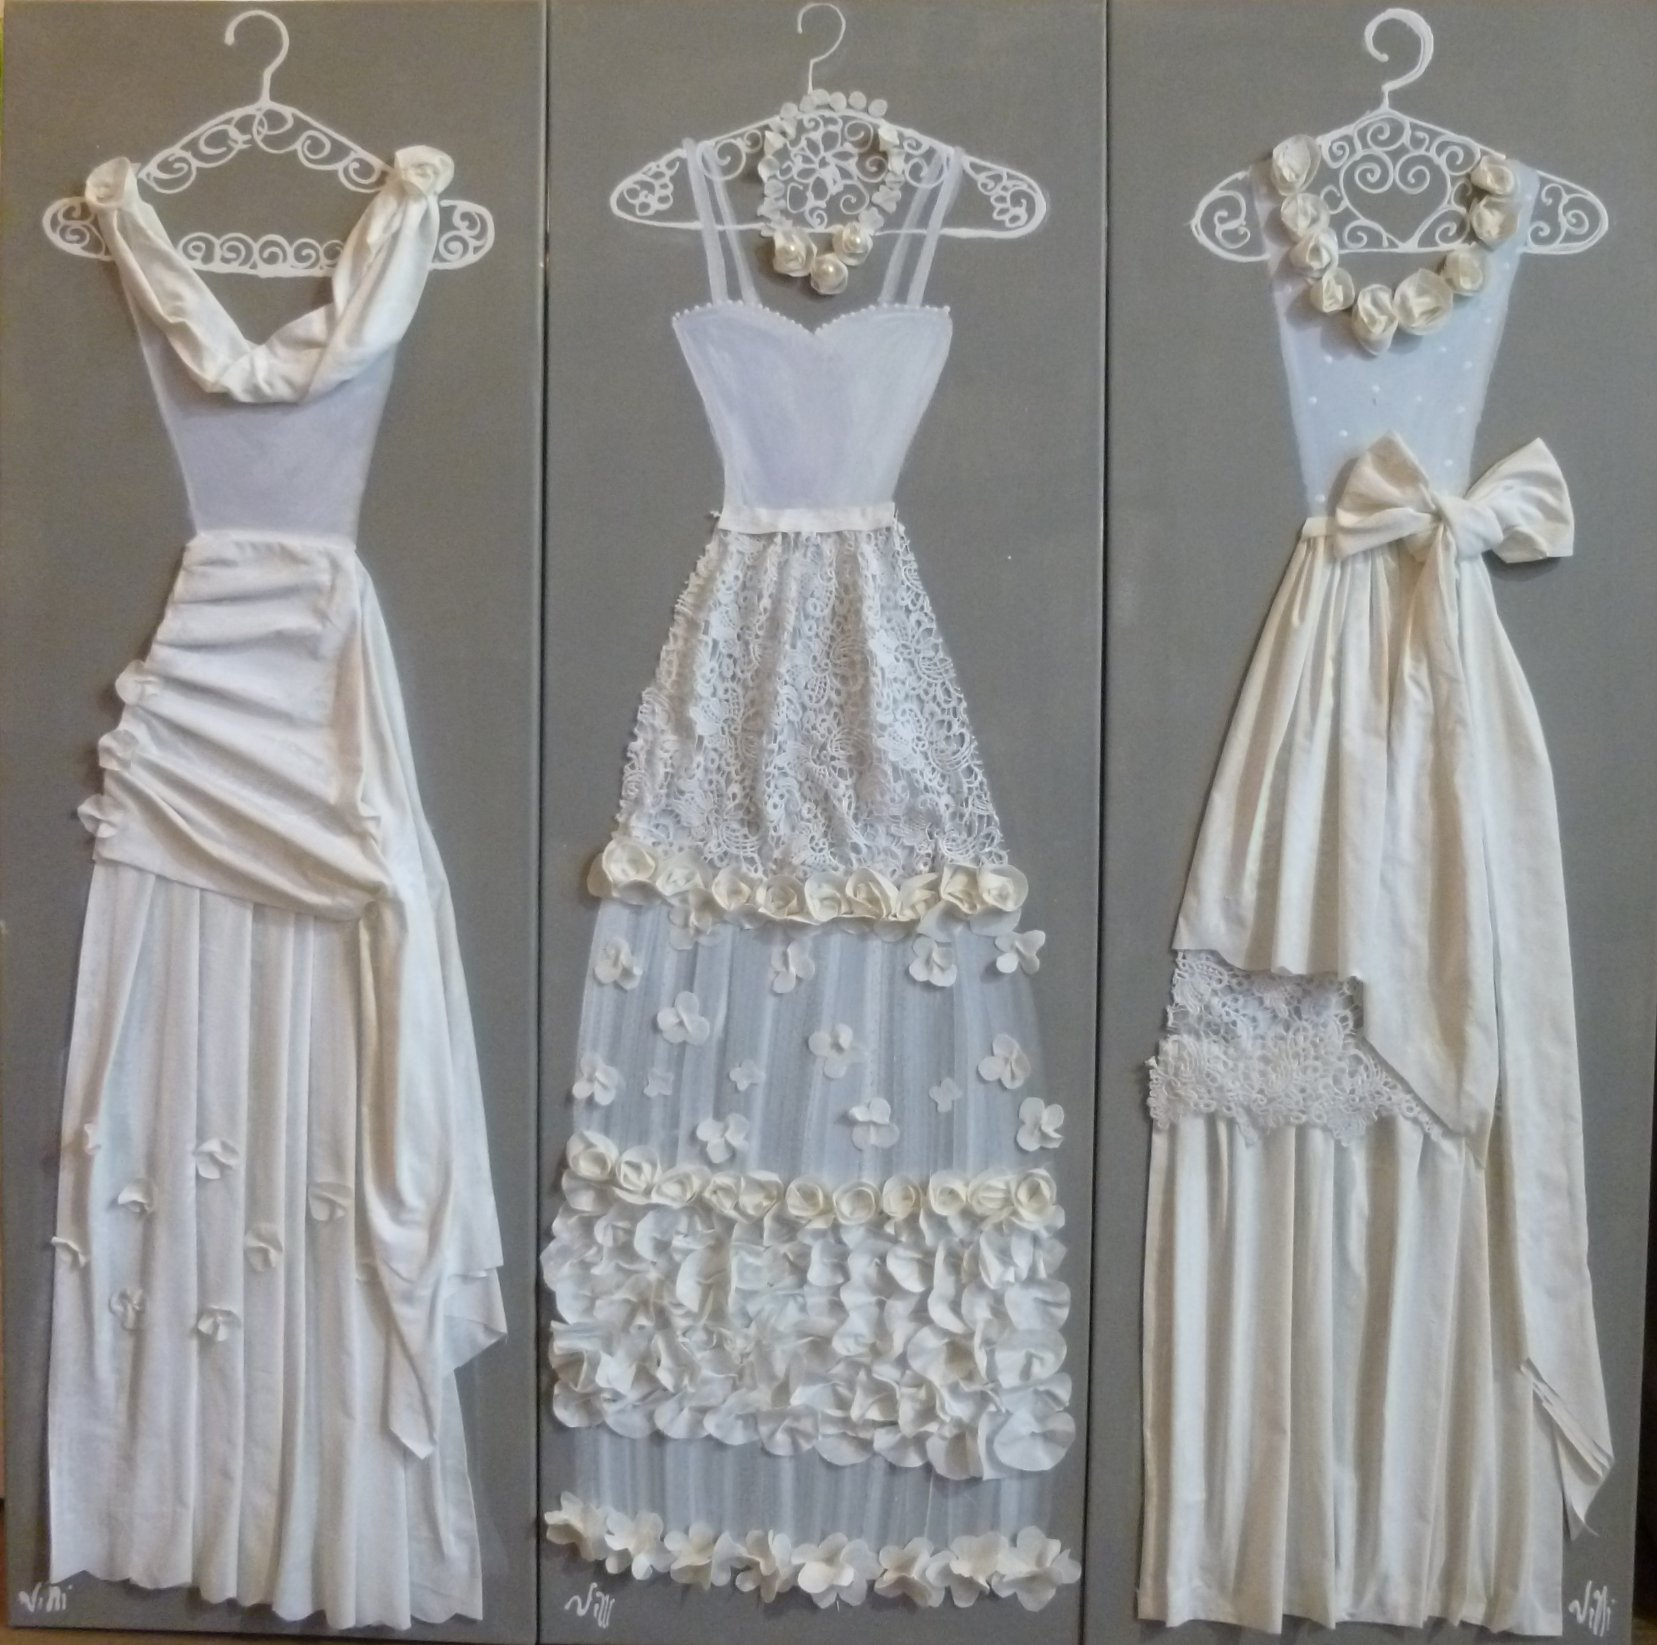 Robes blanches 2015 3x40x120